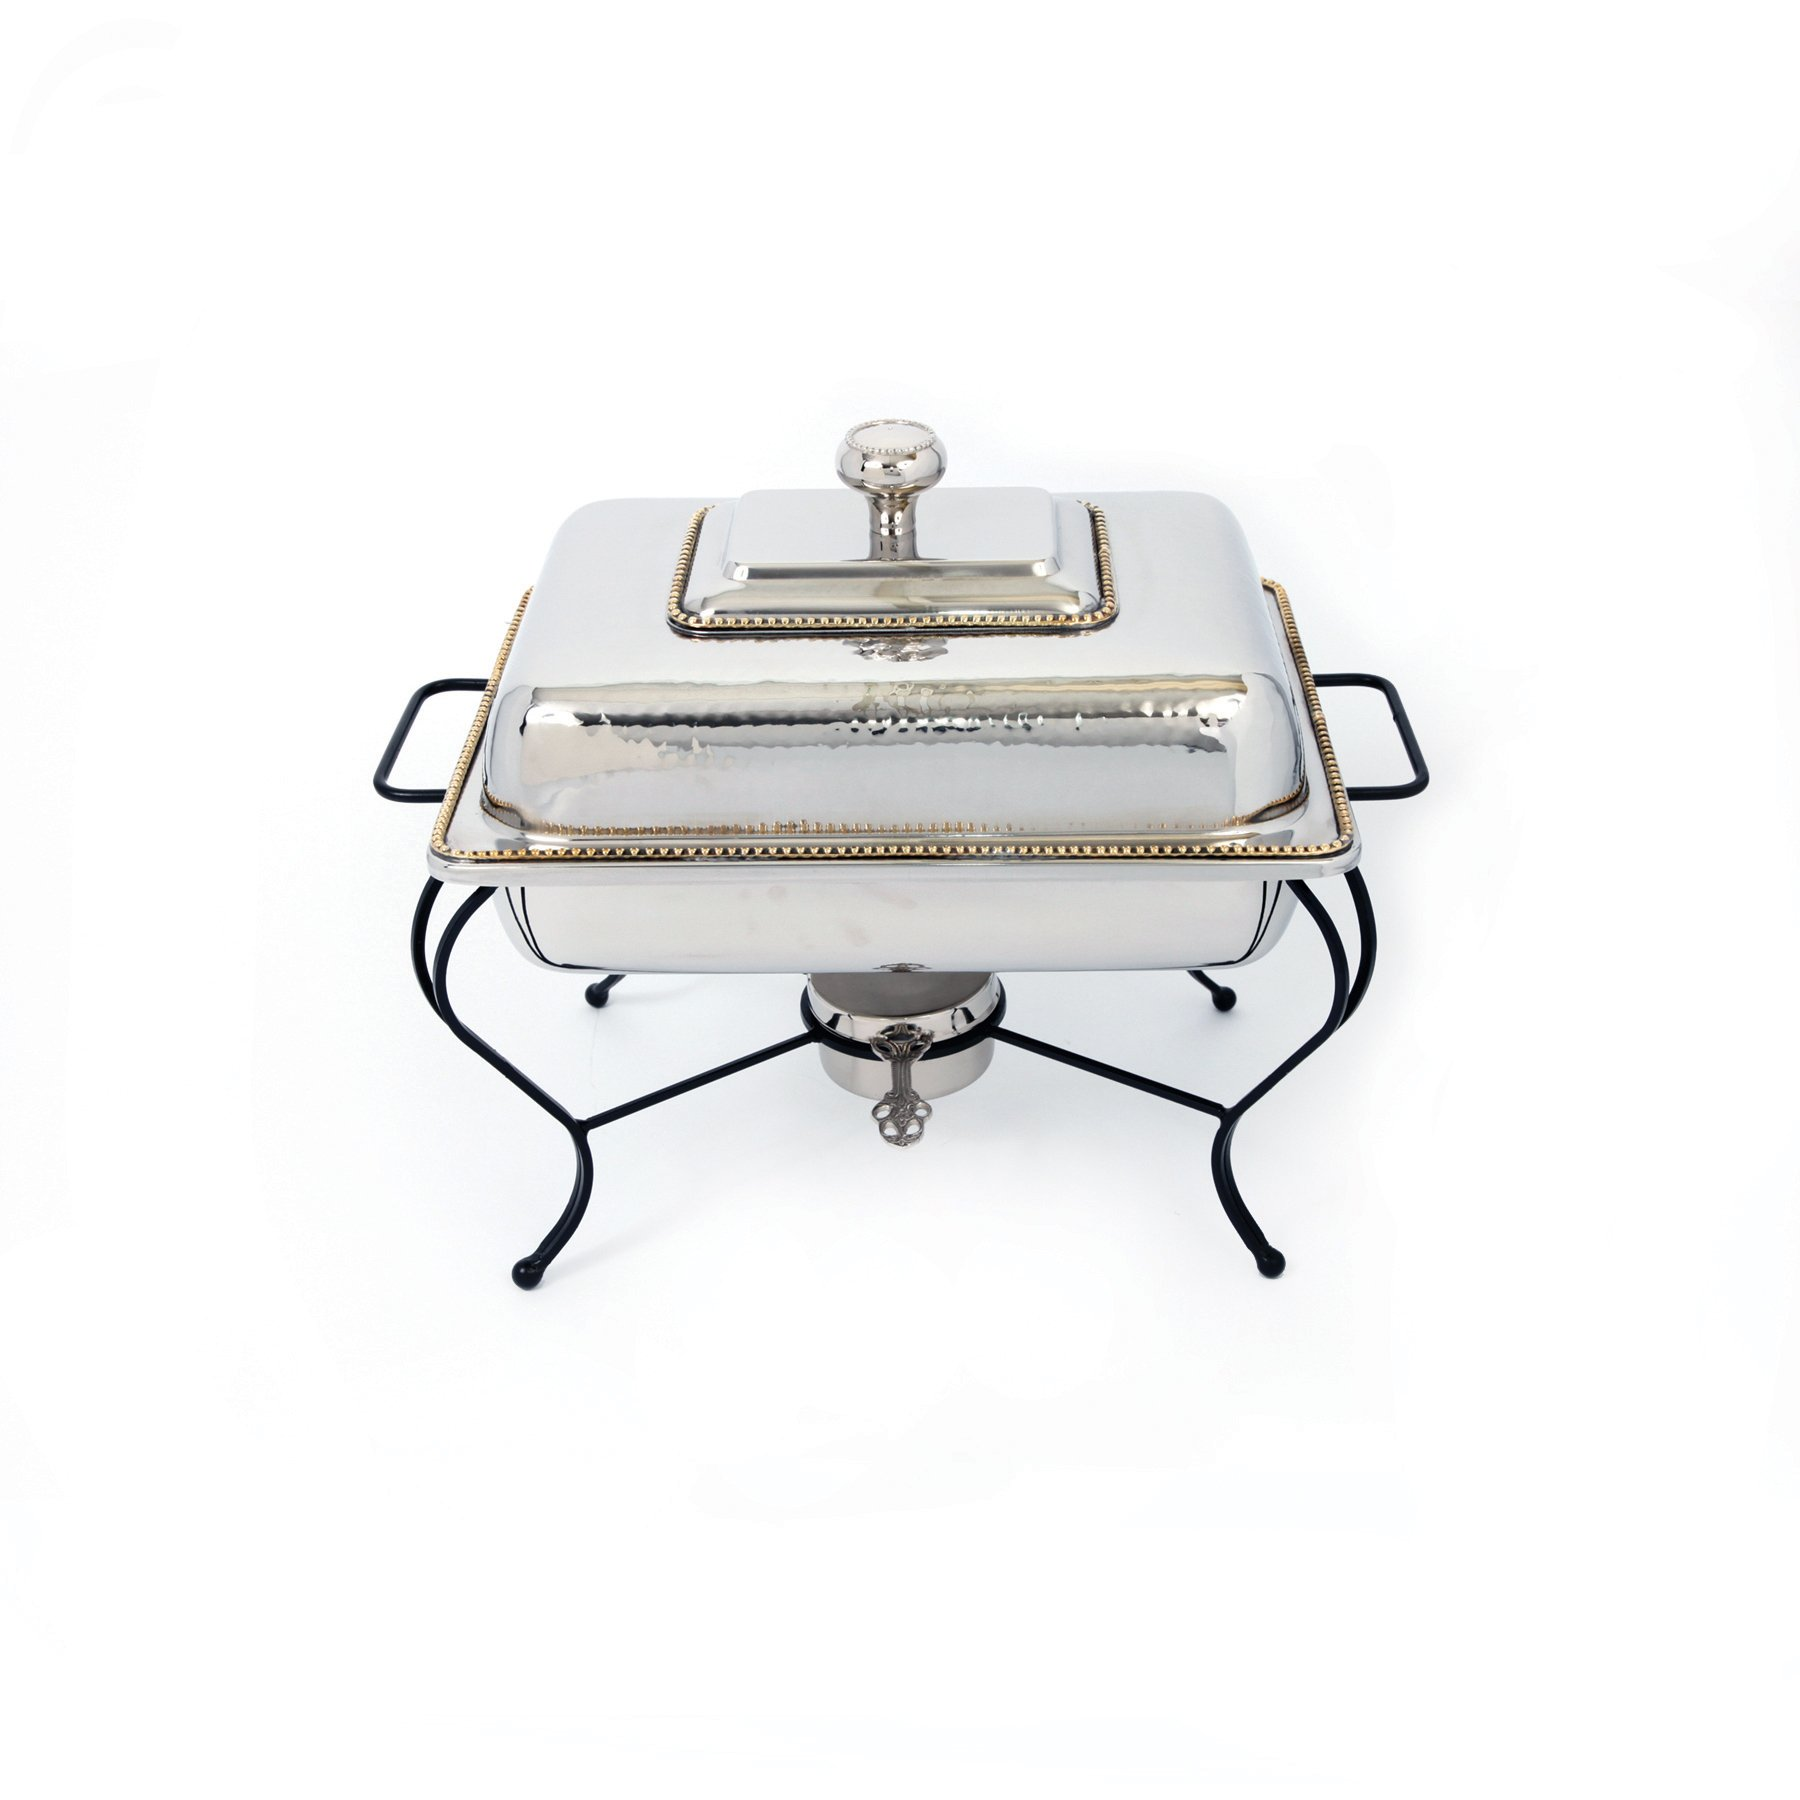 Star Home 6-Quart Rectangle Stainless Steel Chafing Dish